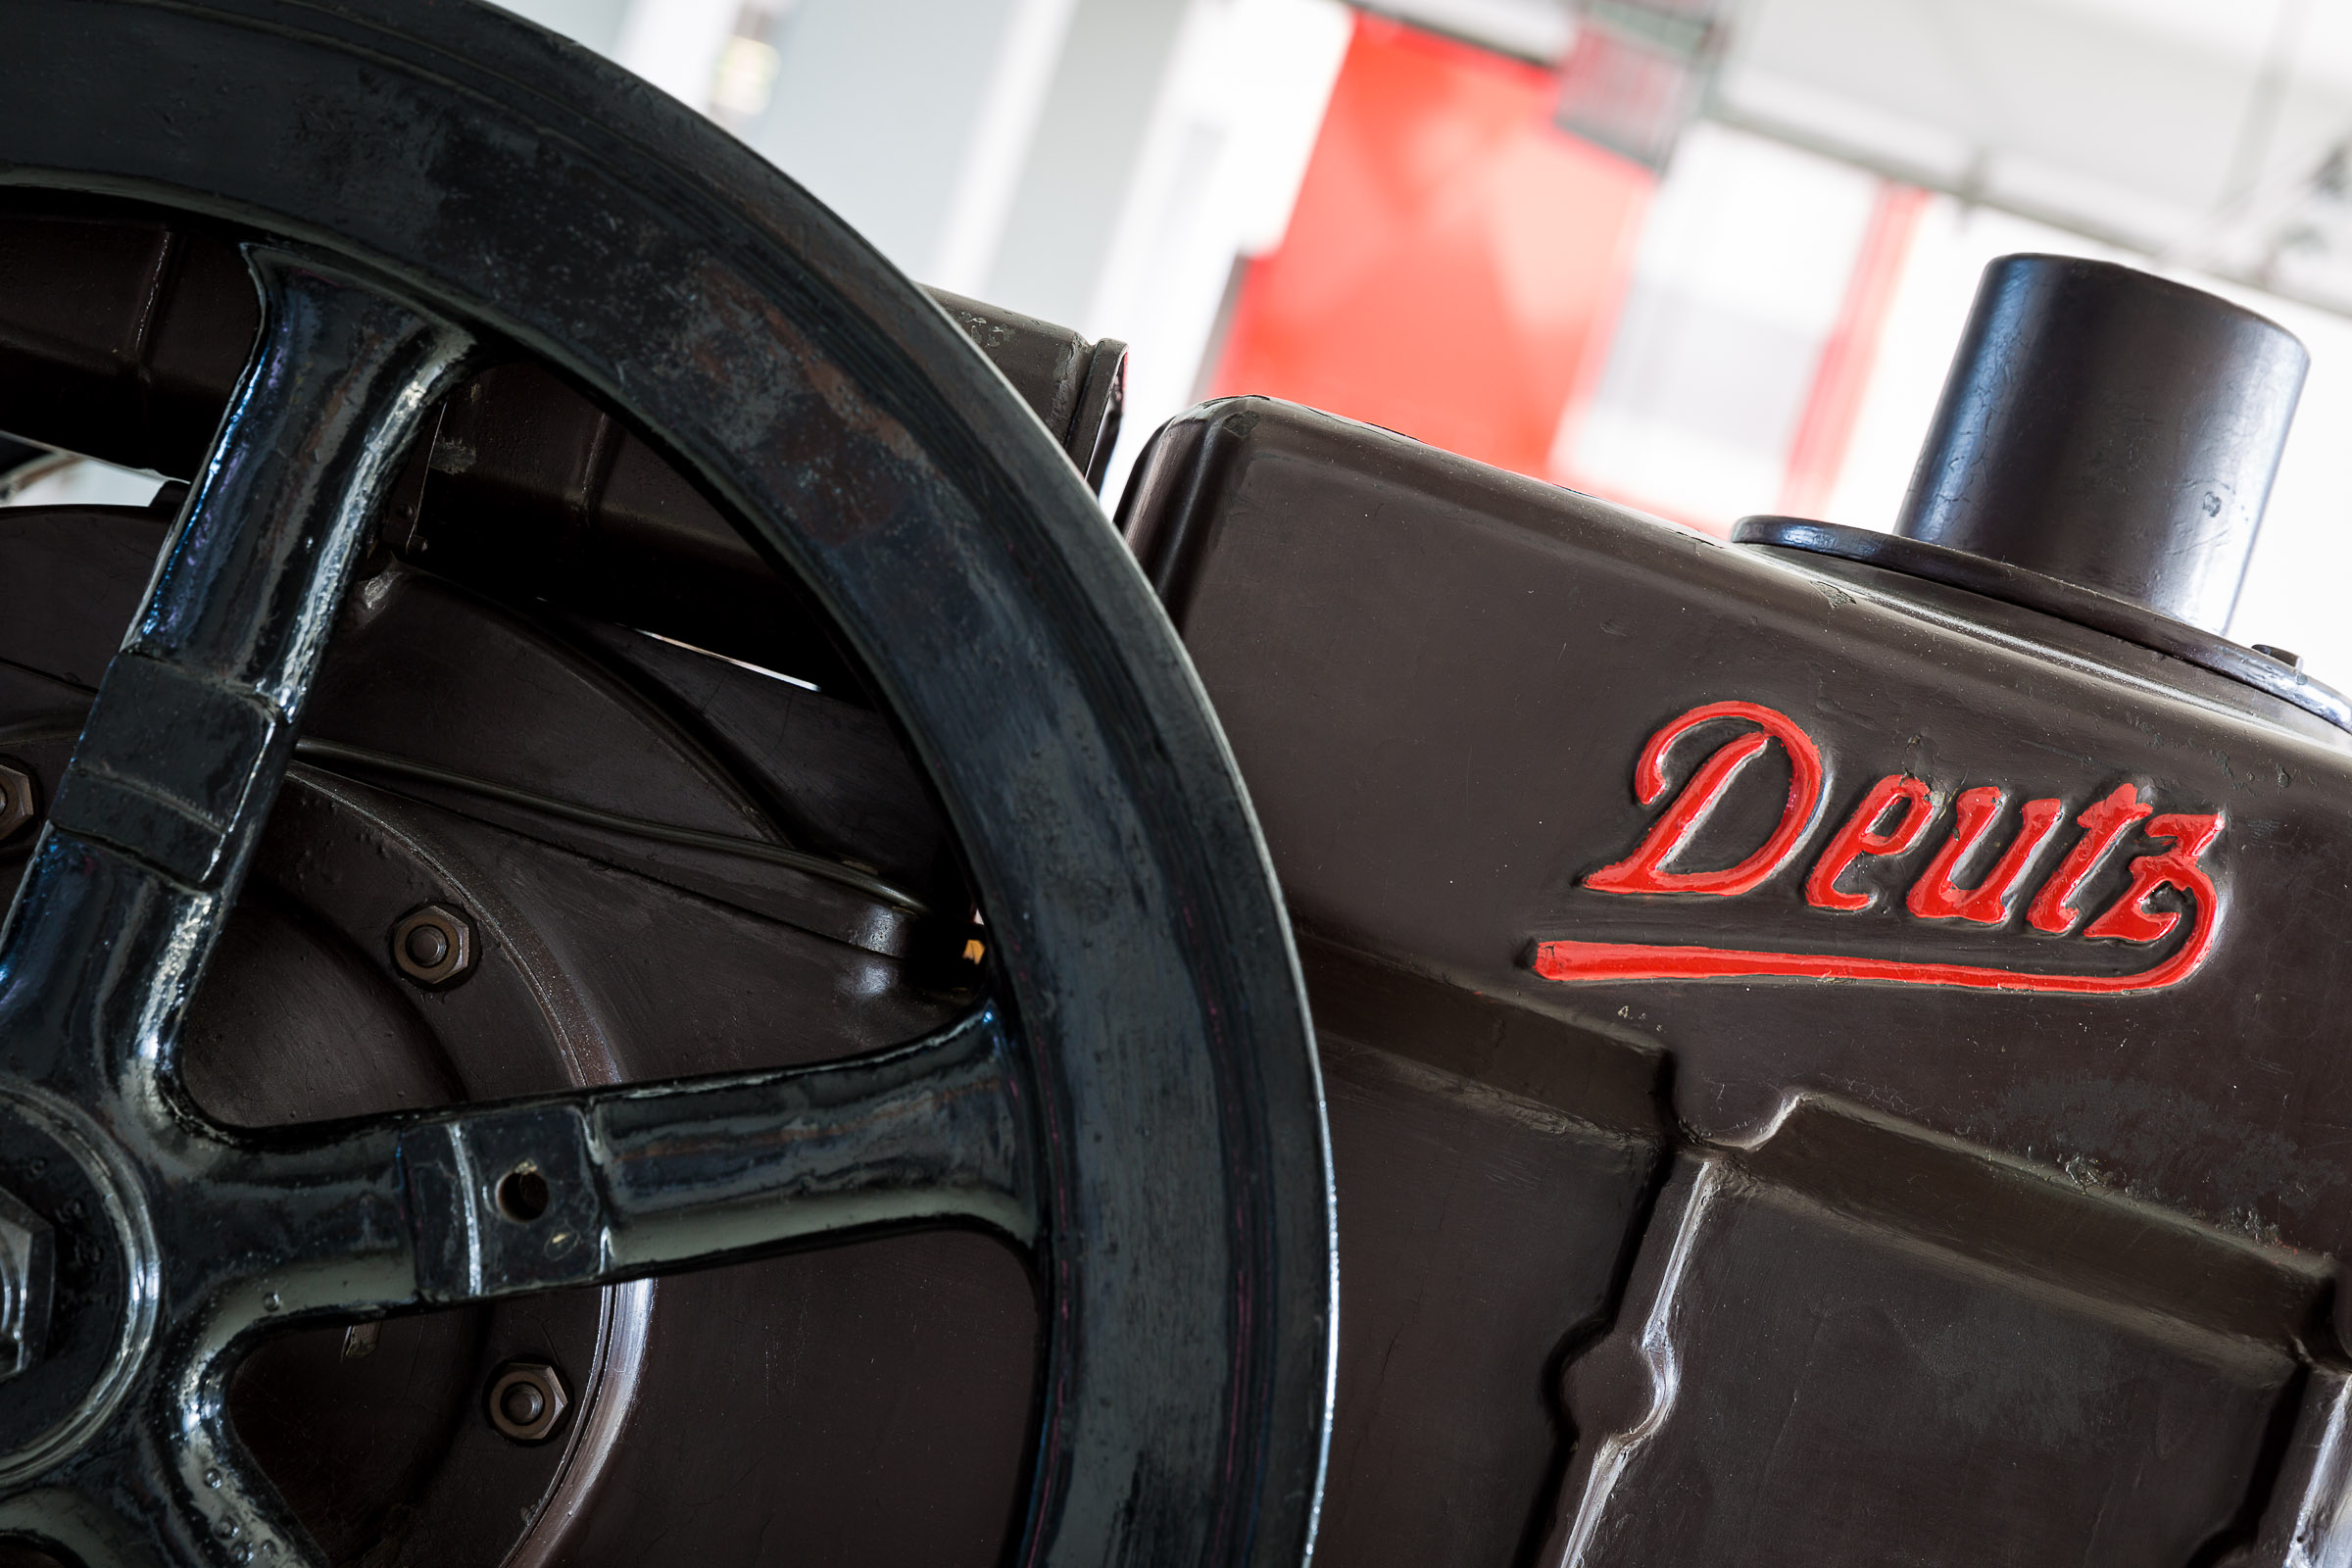 Deutz engine logo stills red